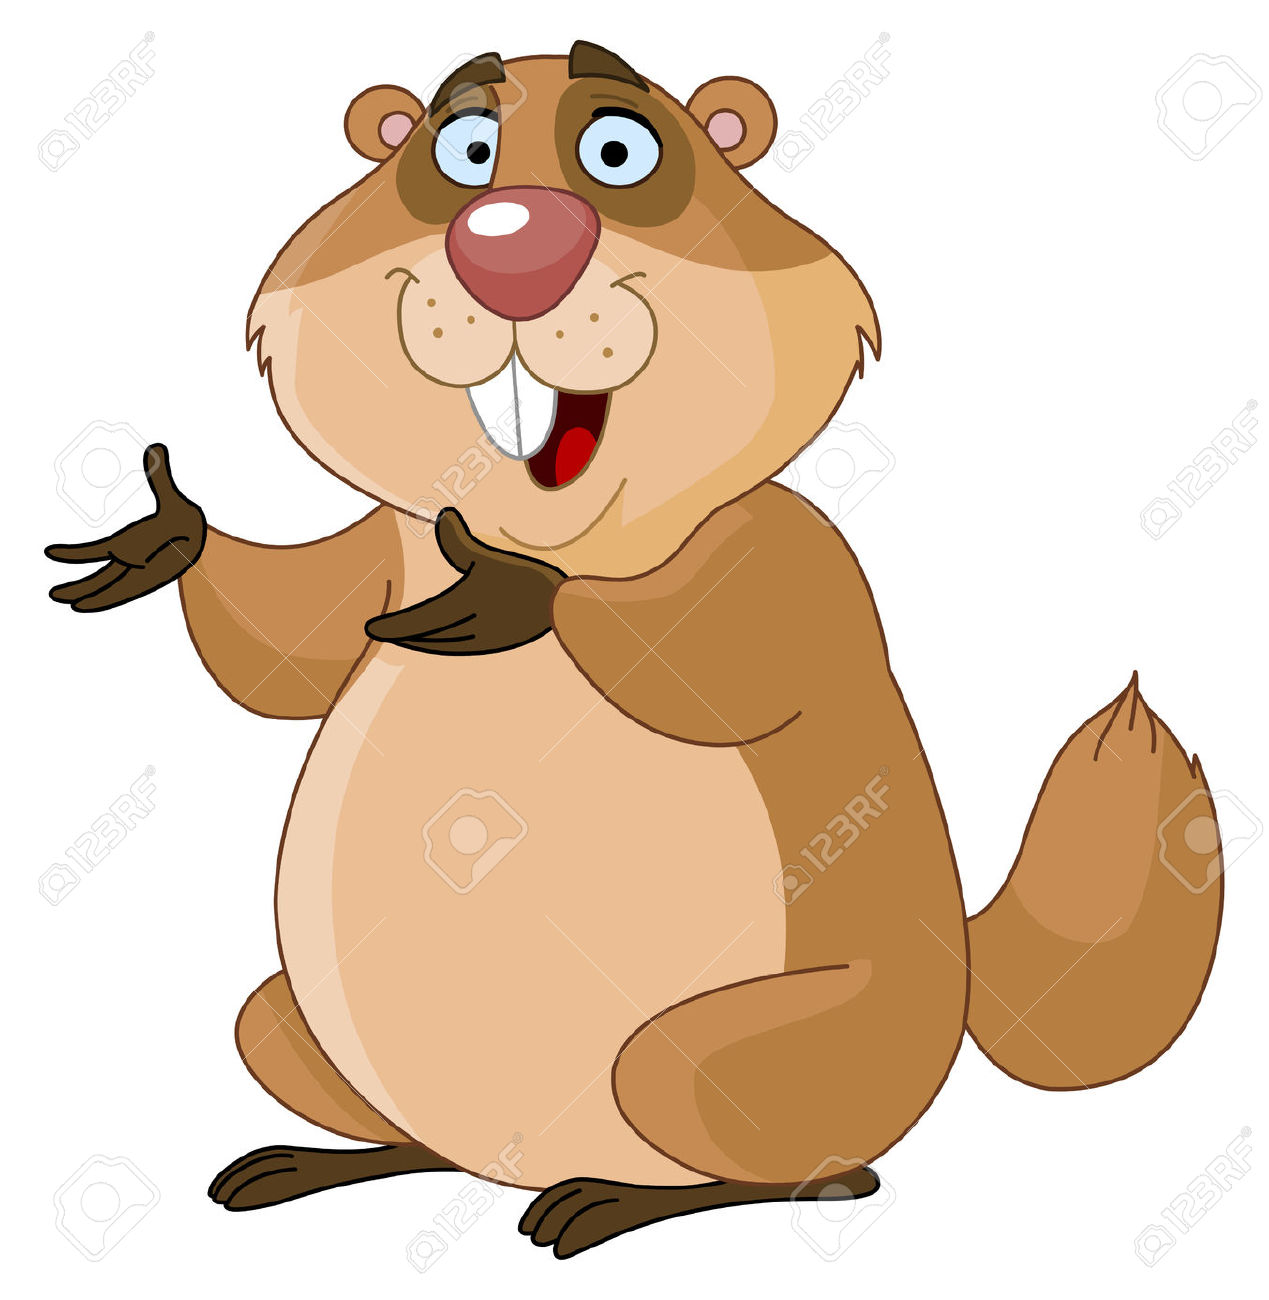 Groundhog Royalty Free Cliparts, Vectors, And Stock Illustration.